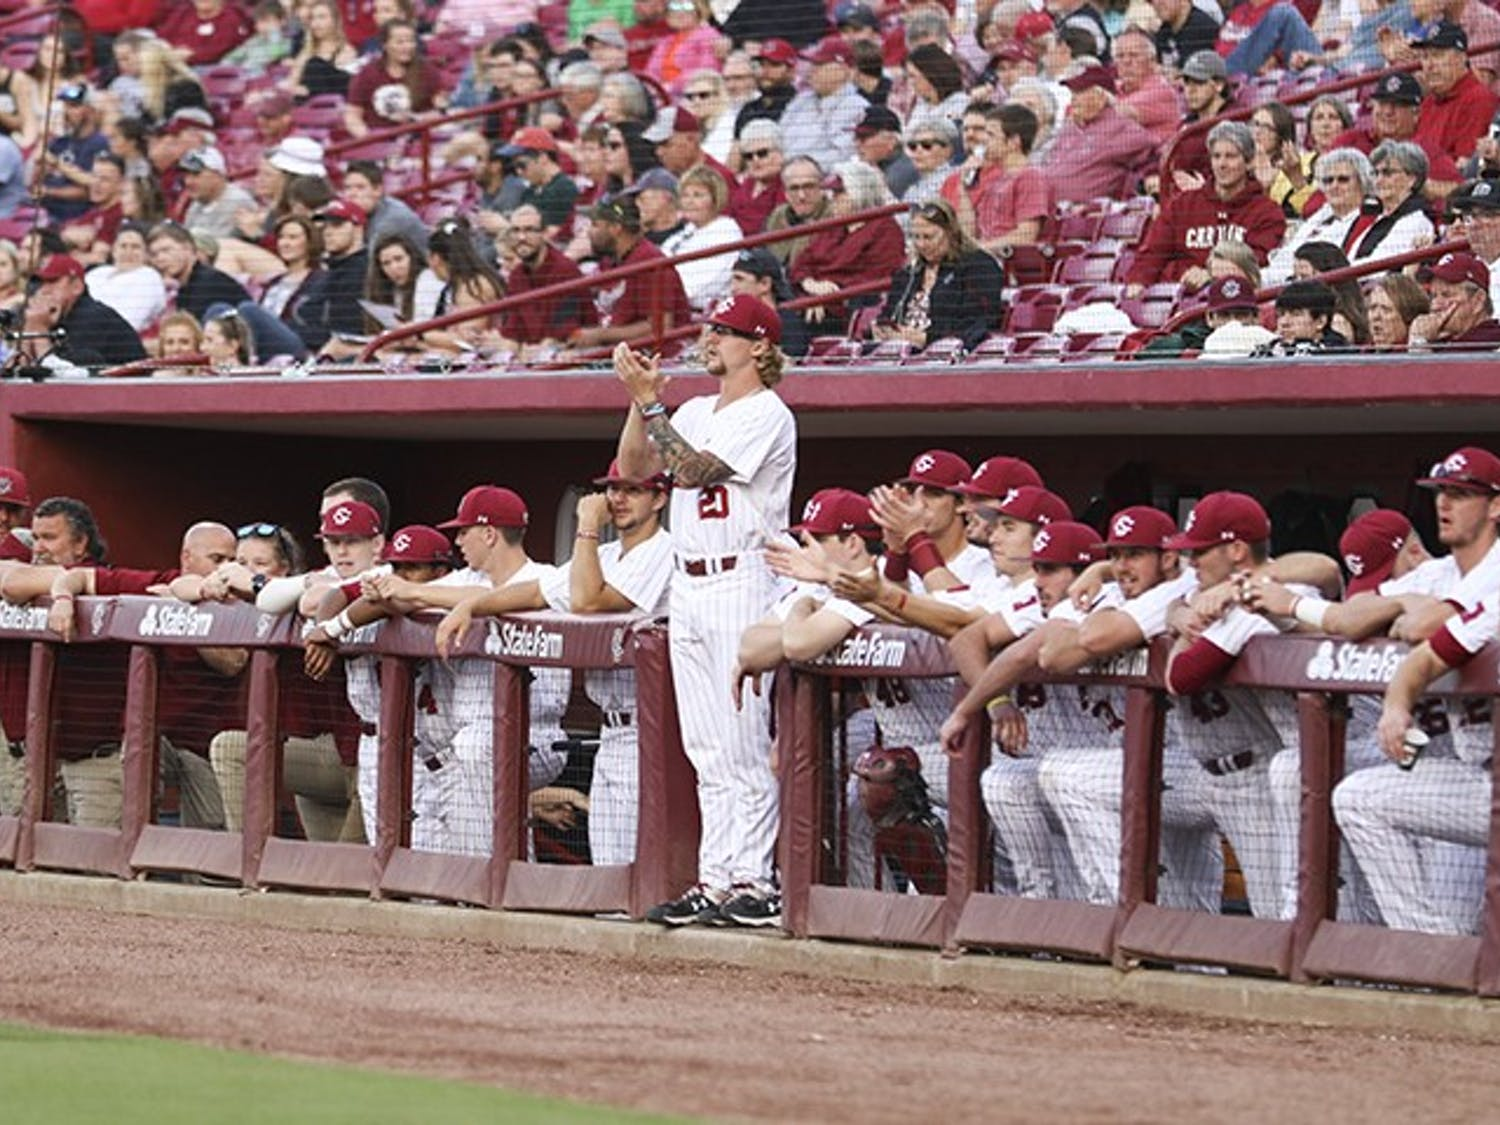 South Carolina baseball players cheer from the dugout during the first game against Auburn at Founders Park on Friday.